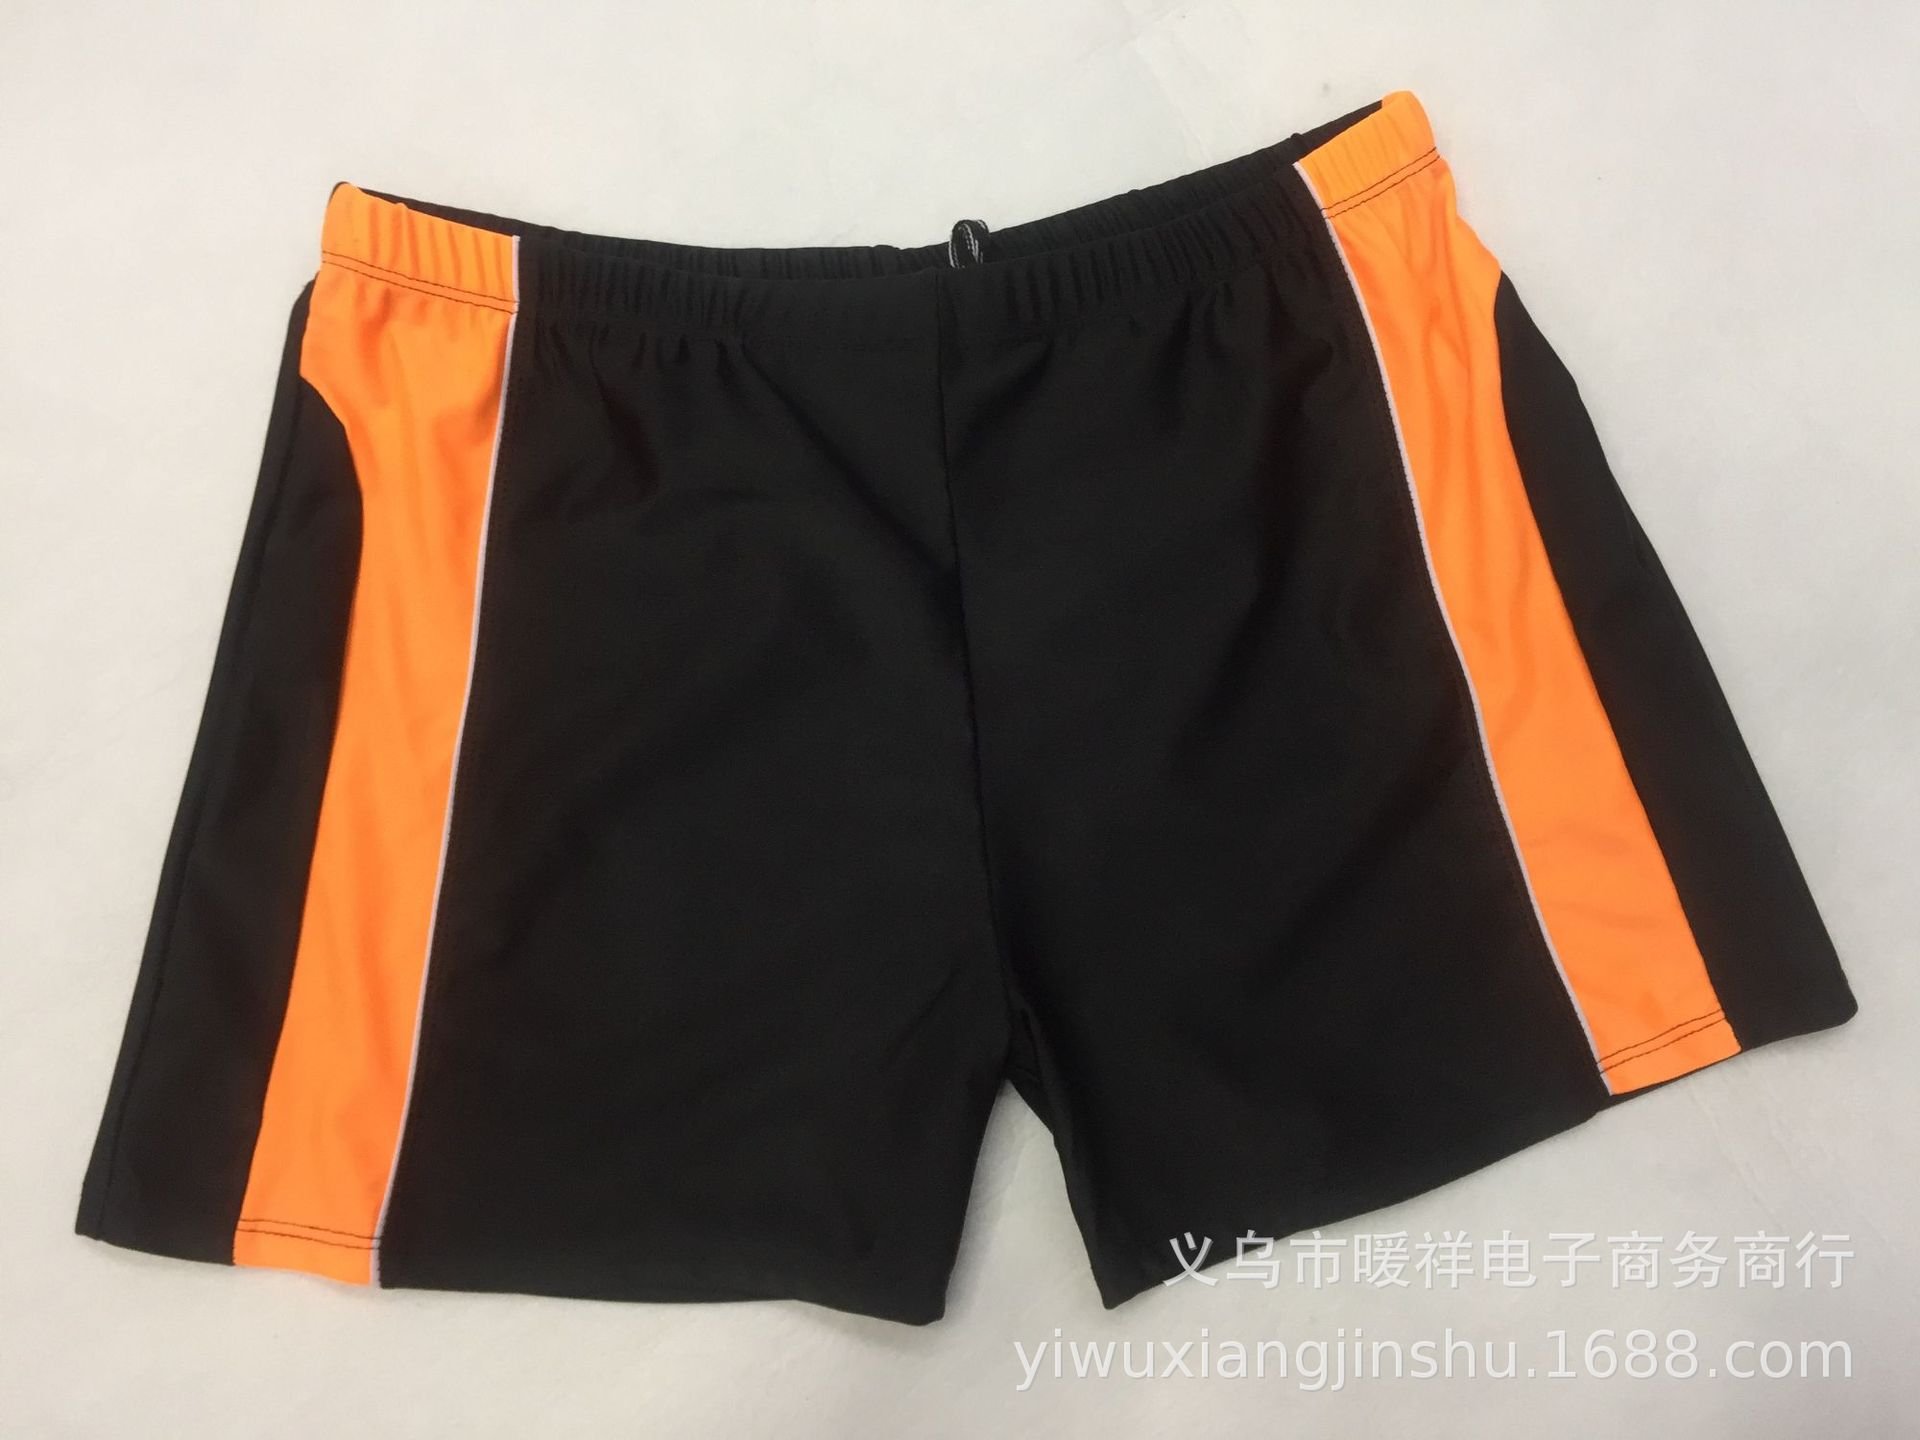 MEN'S Swimming Trunks Boxer Hot Springs Anti-Awkward Quick-Dry Large Size Plus-sized Sports Ultra-stretch Loose-Fit Swimming Sui